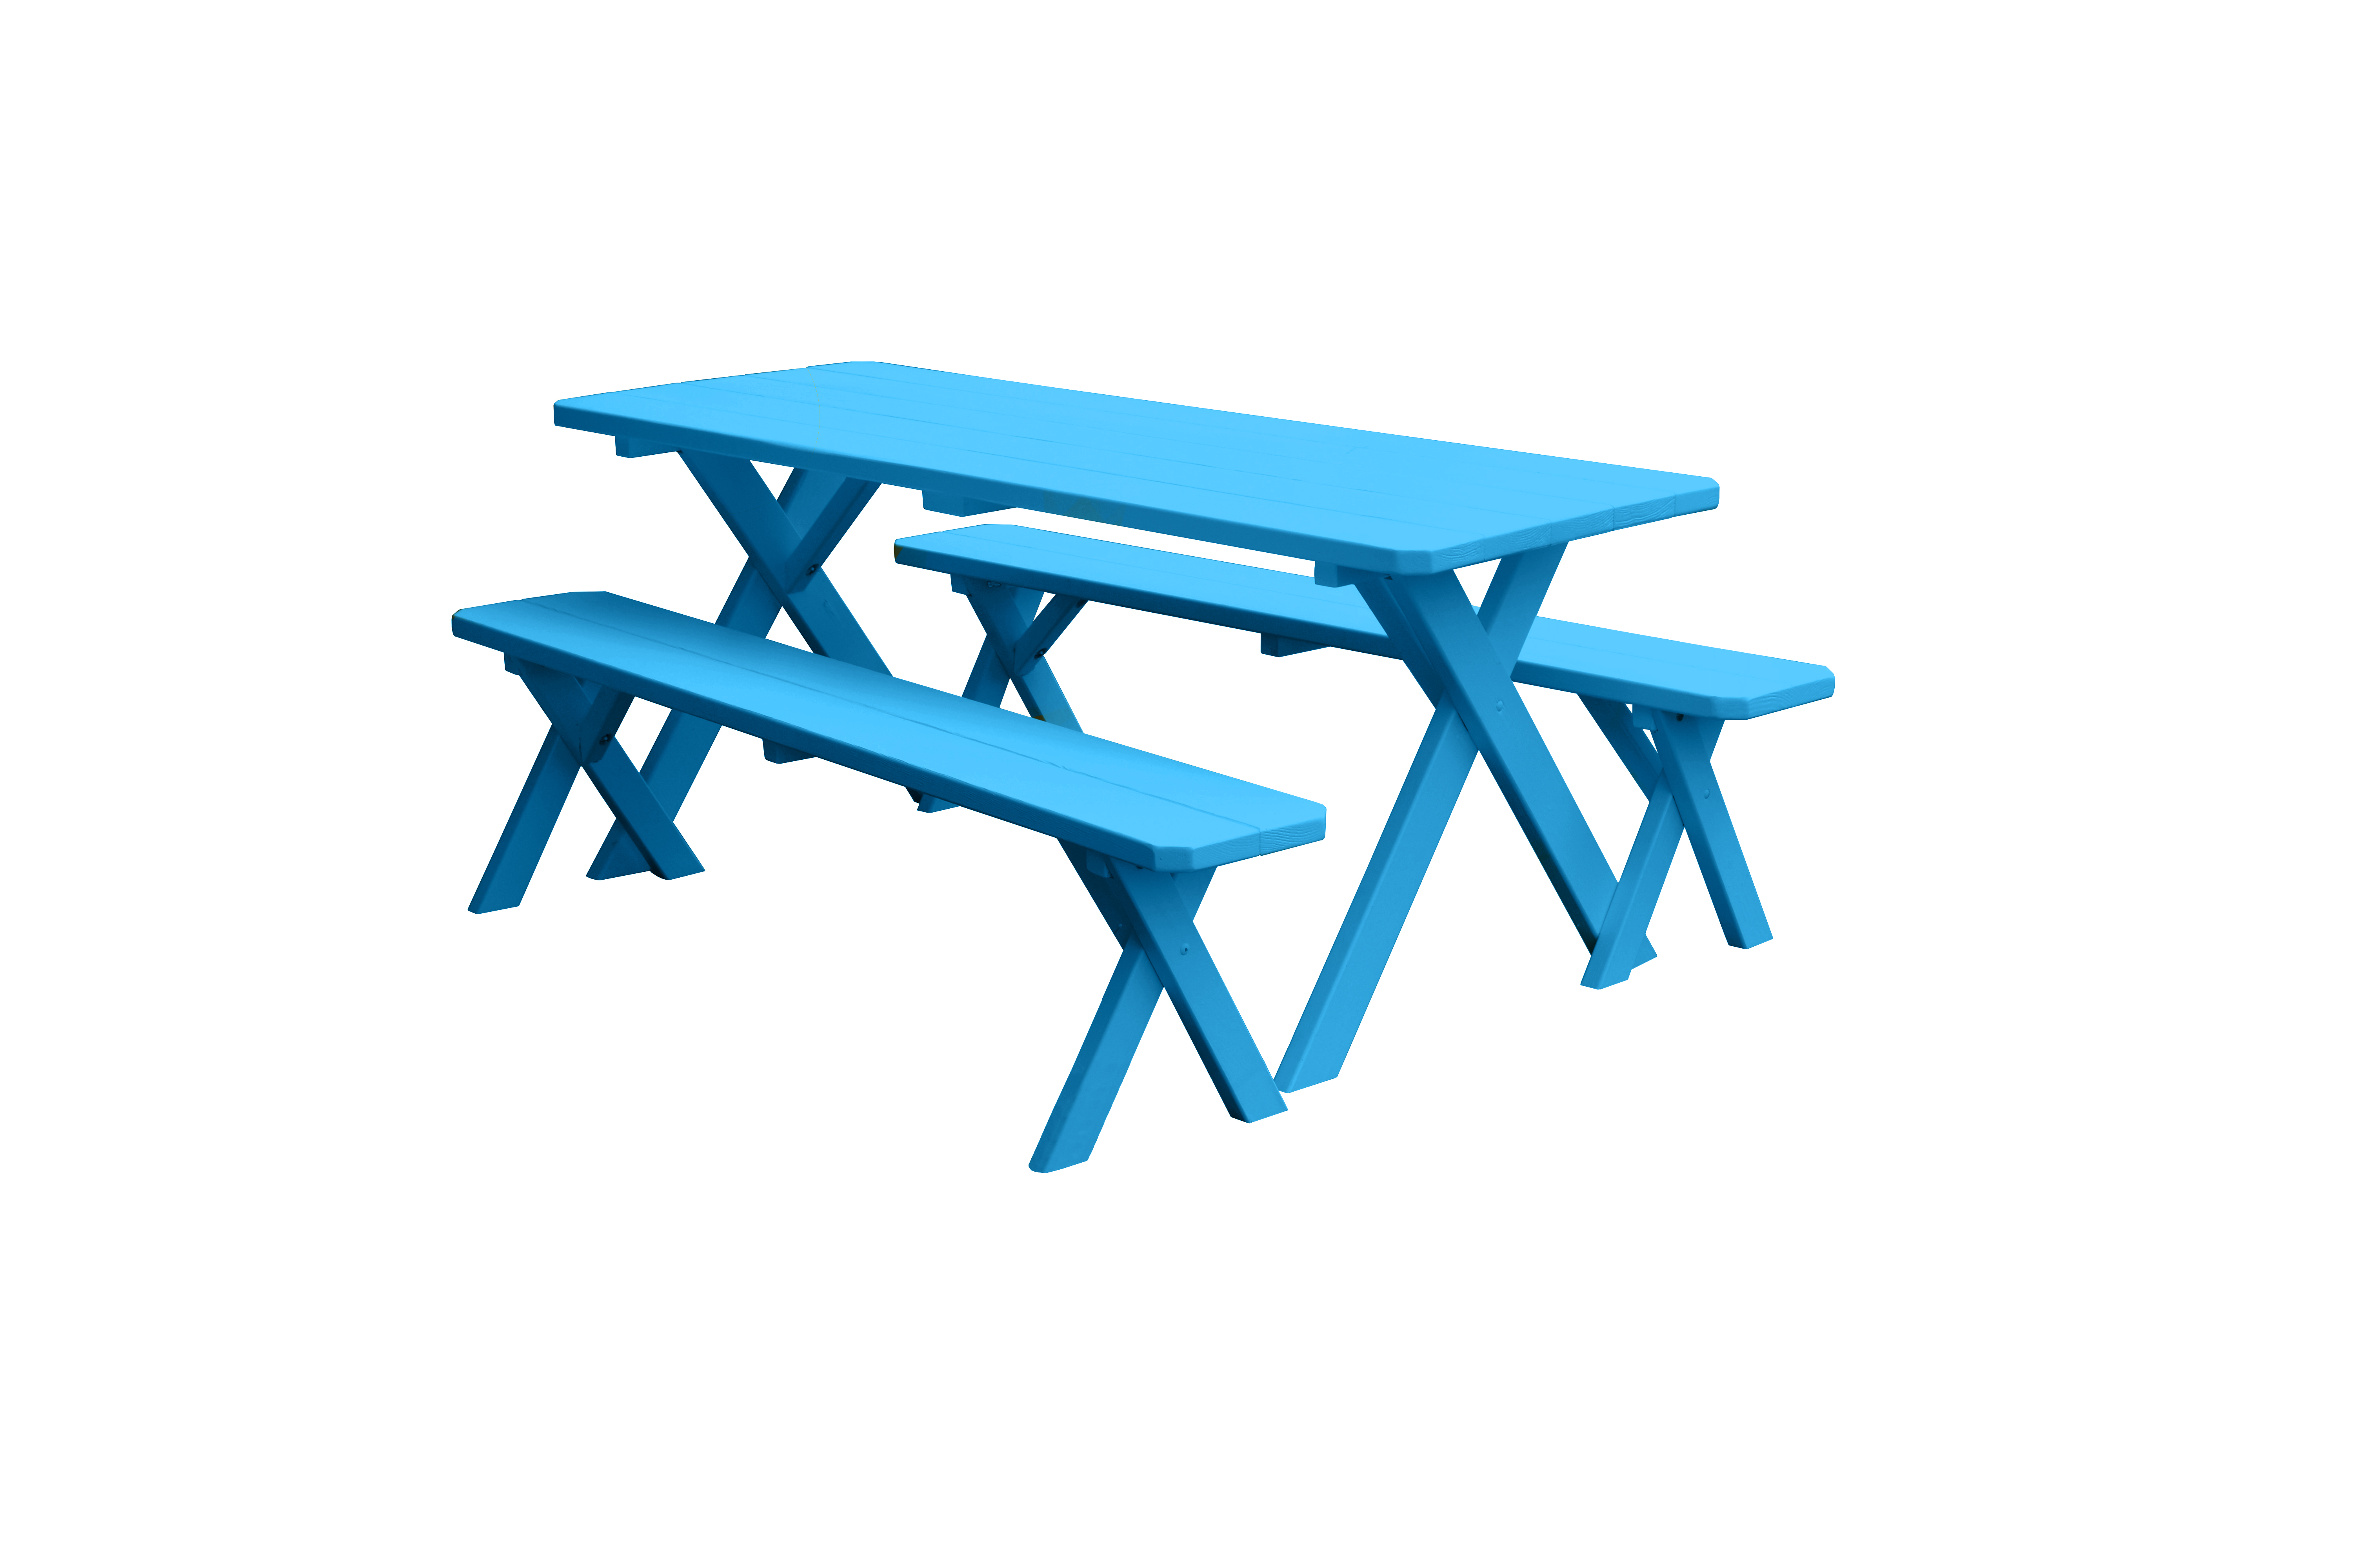 8 foot Cross-leg Wooden Picnic Table with 2 Wooden Benches by Supplier Generic